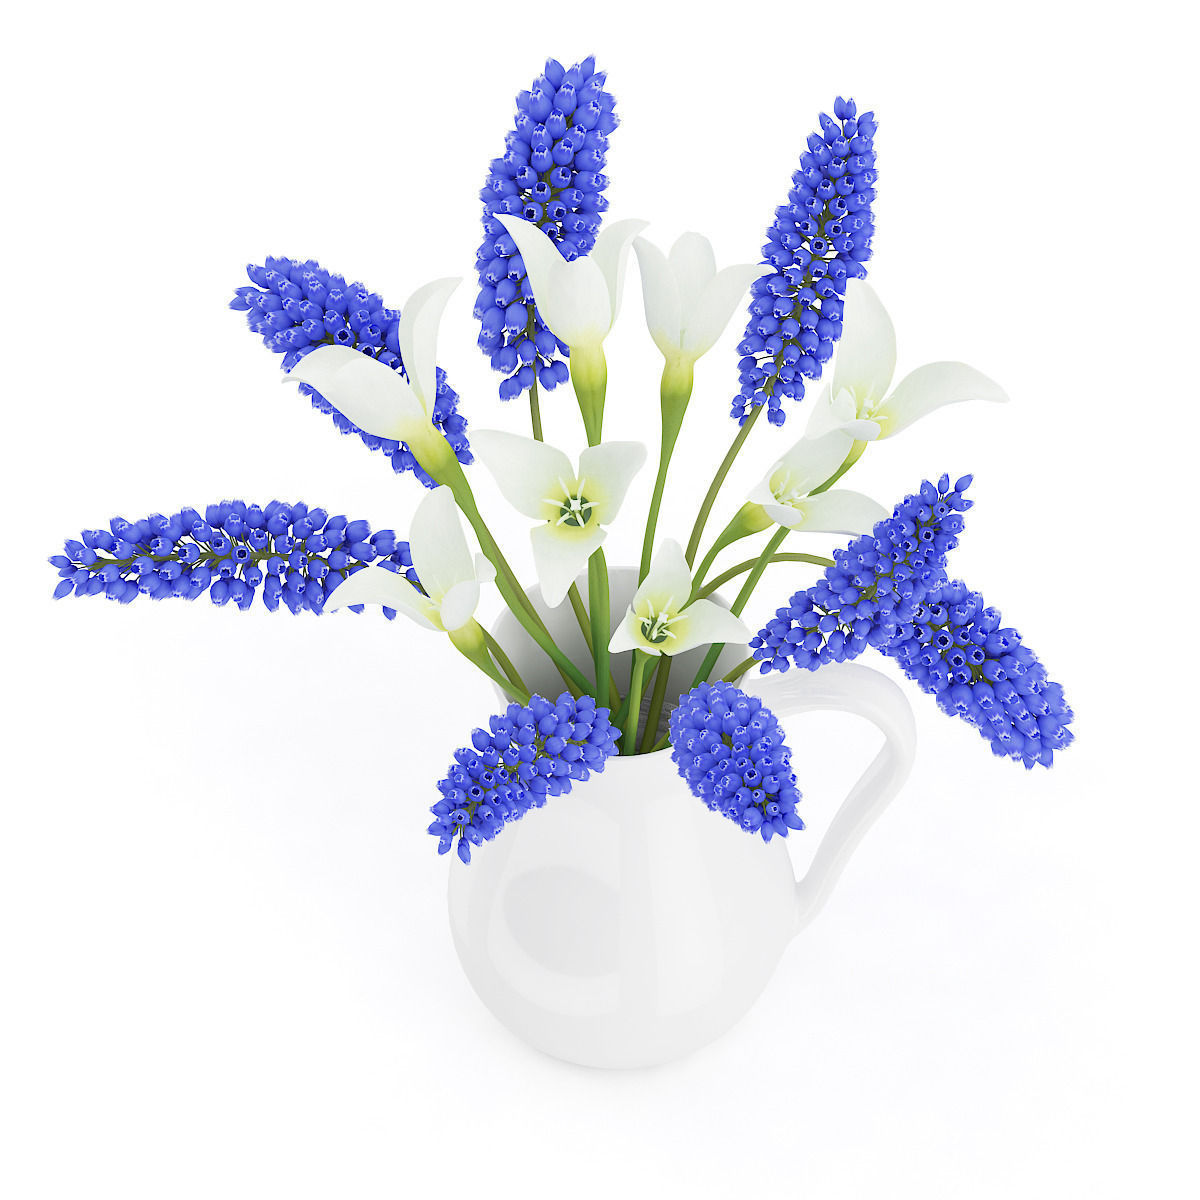 3d blue and white flowers in white pot cgtrader blue and white flowers in white pot 3d model max obj fbx c4d mtl 5 izmirmasajfo